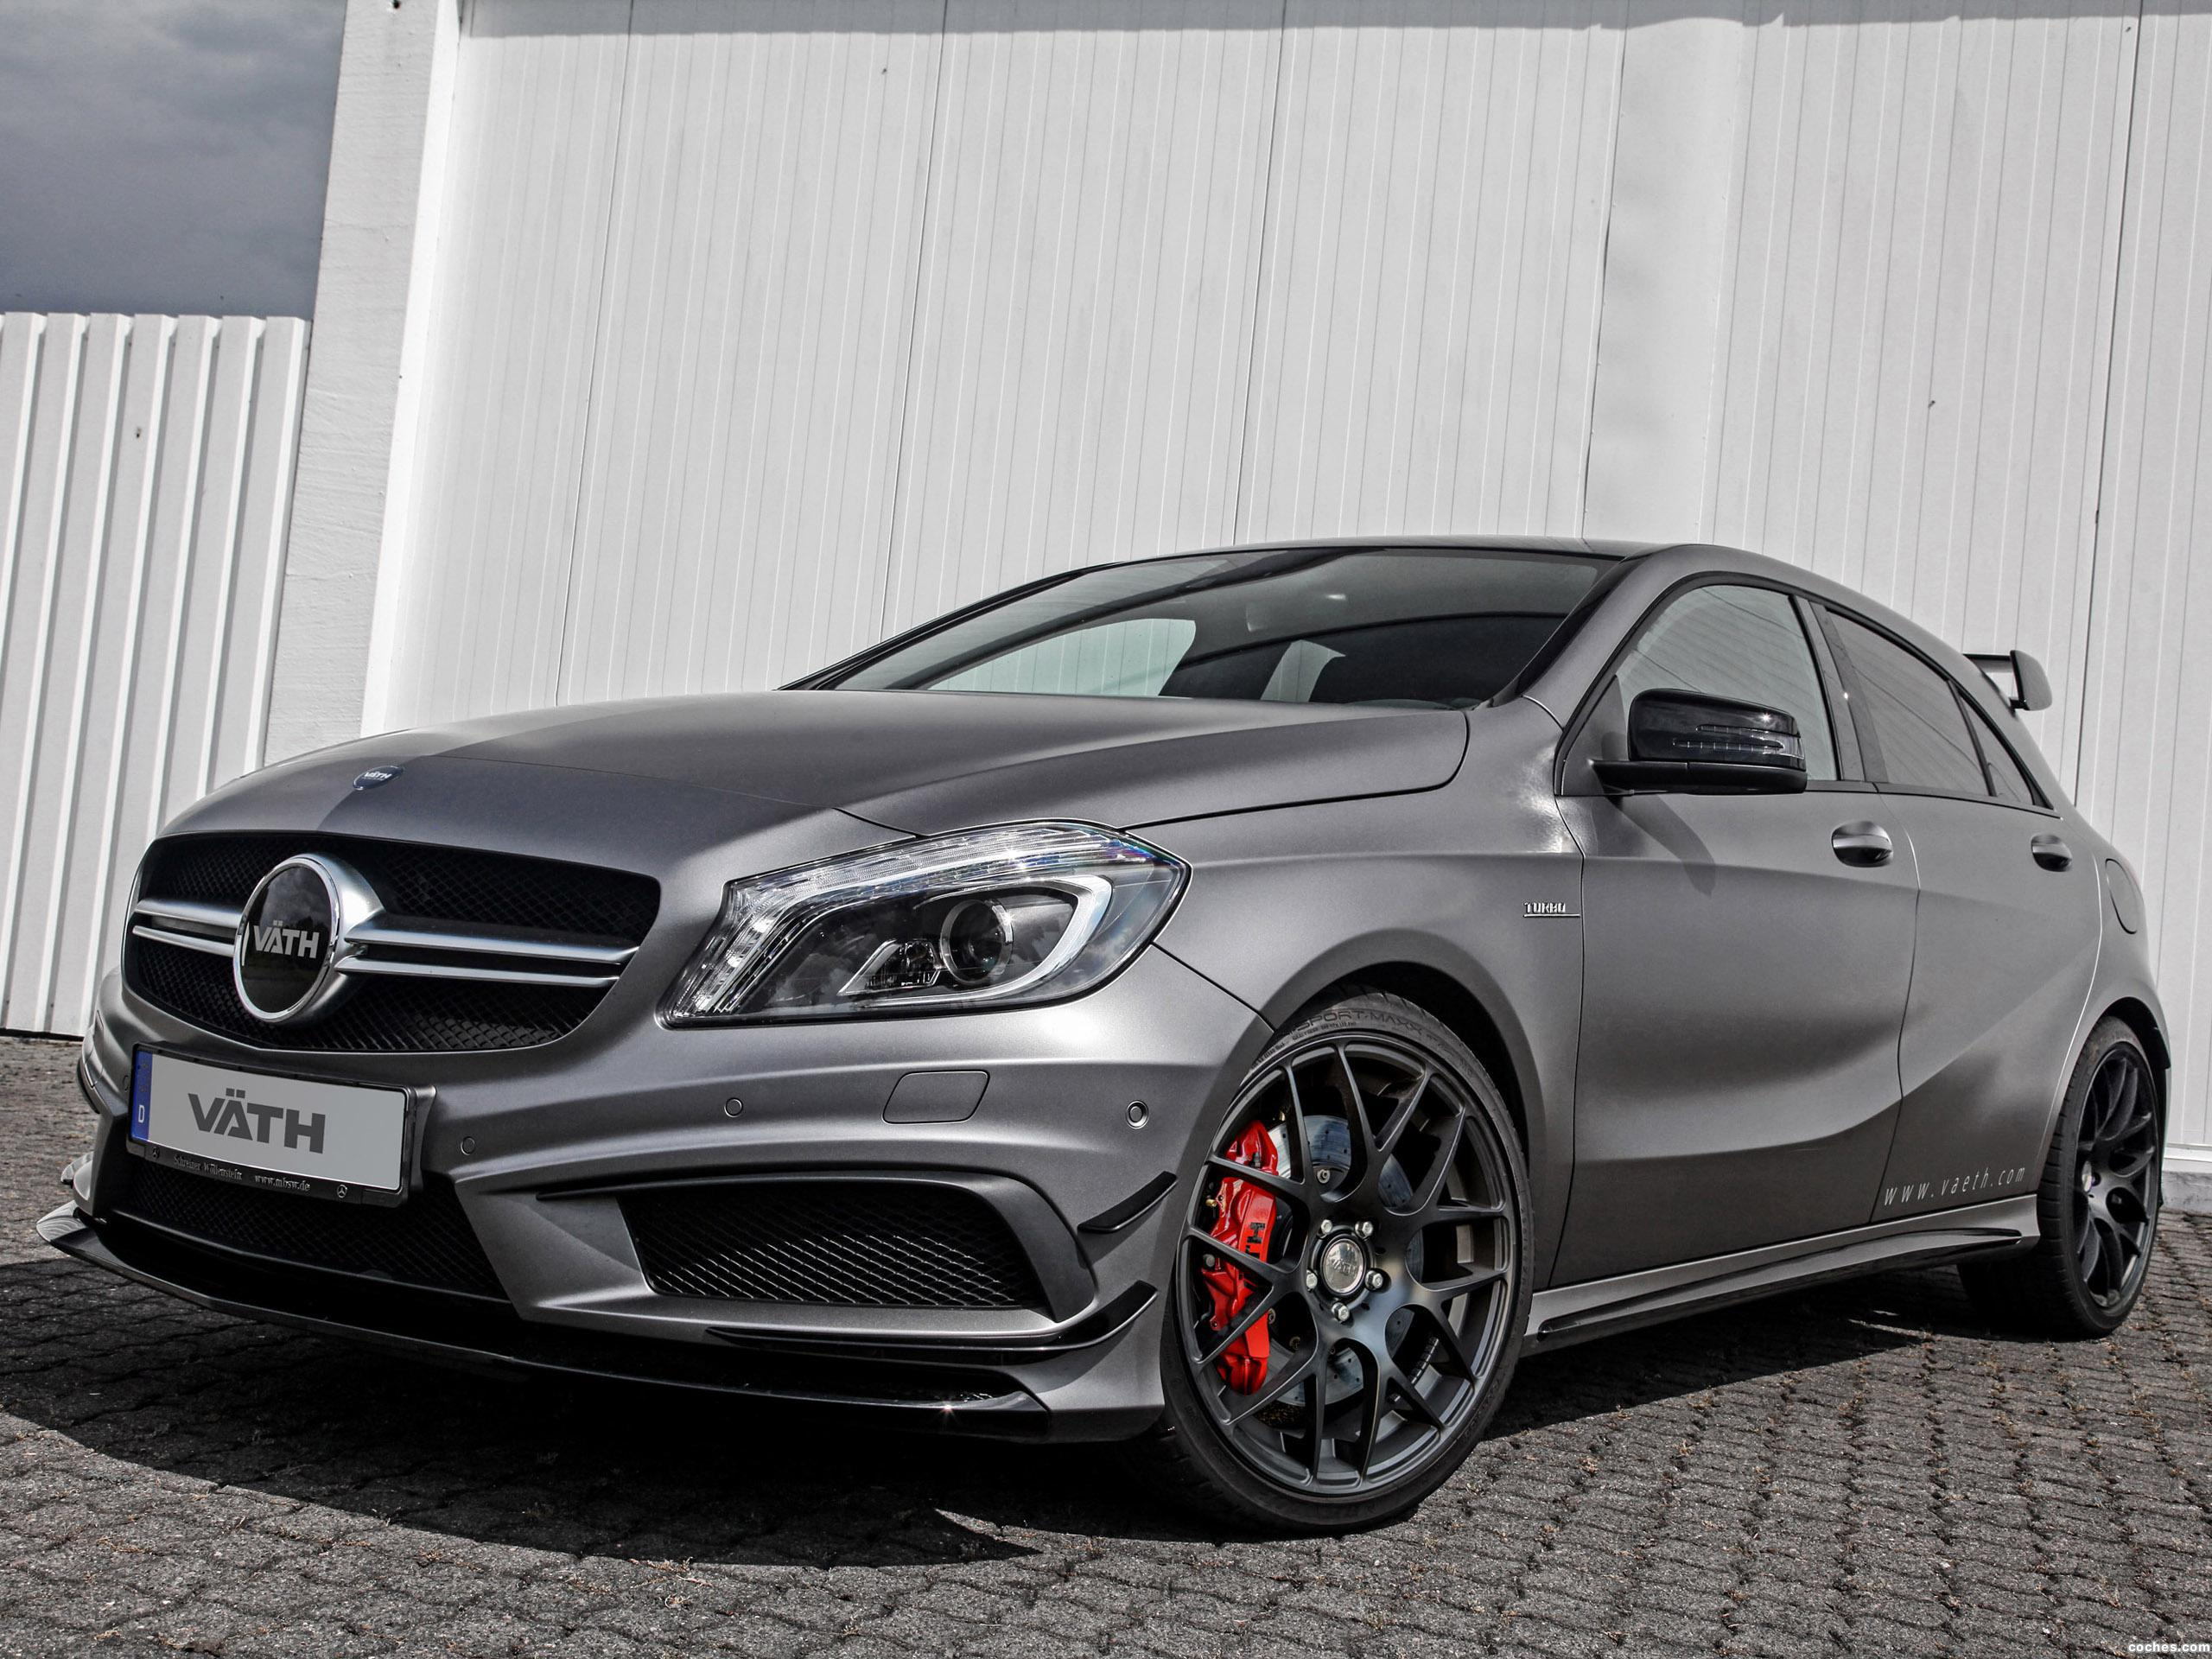 fotos de mercedes vath amg clase a a45 2014. Black Bedroom Furniture Sets. Home Design Ideas